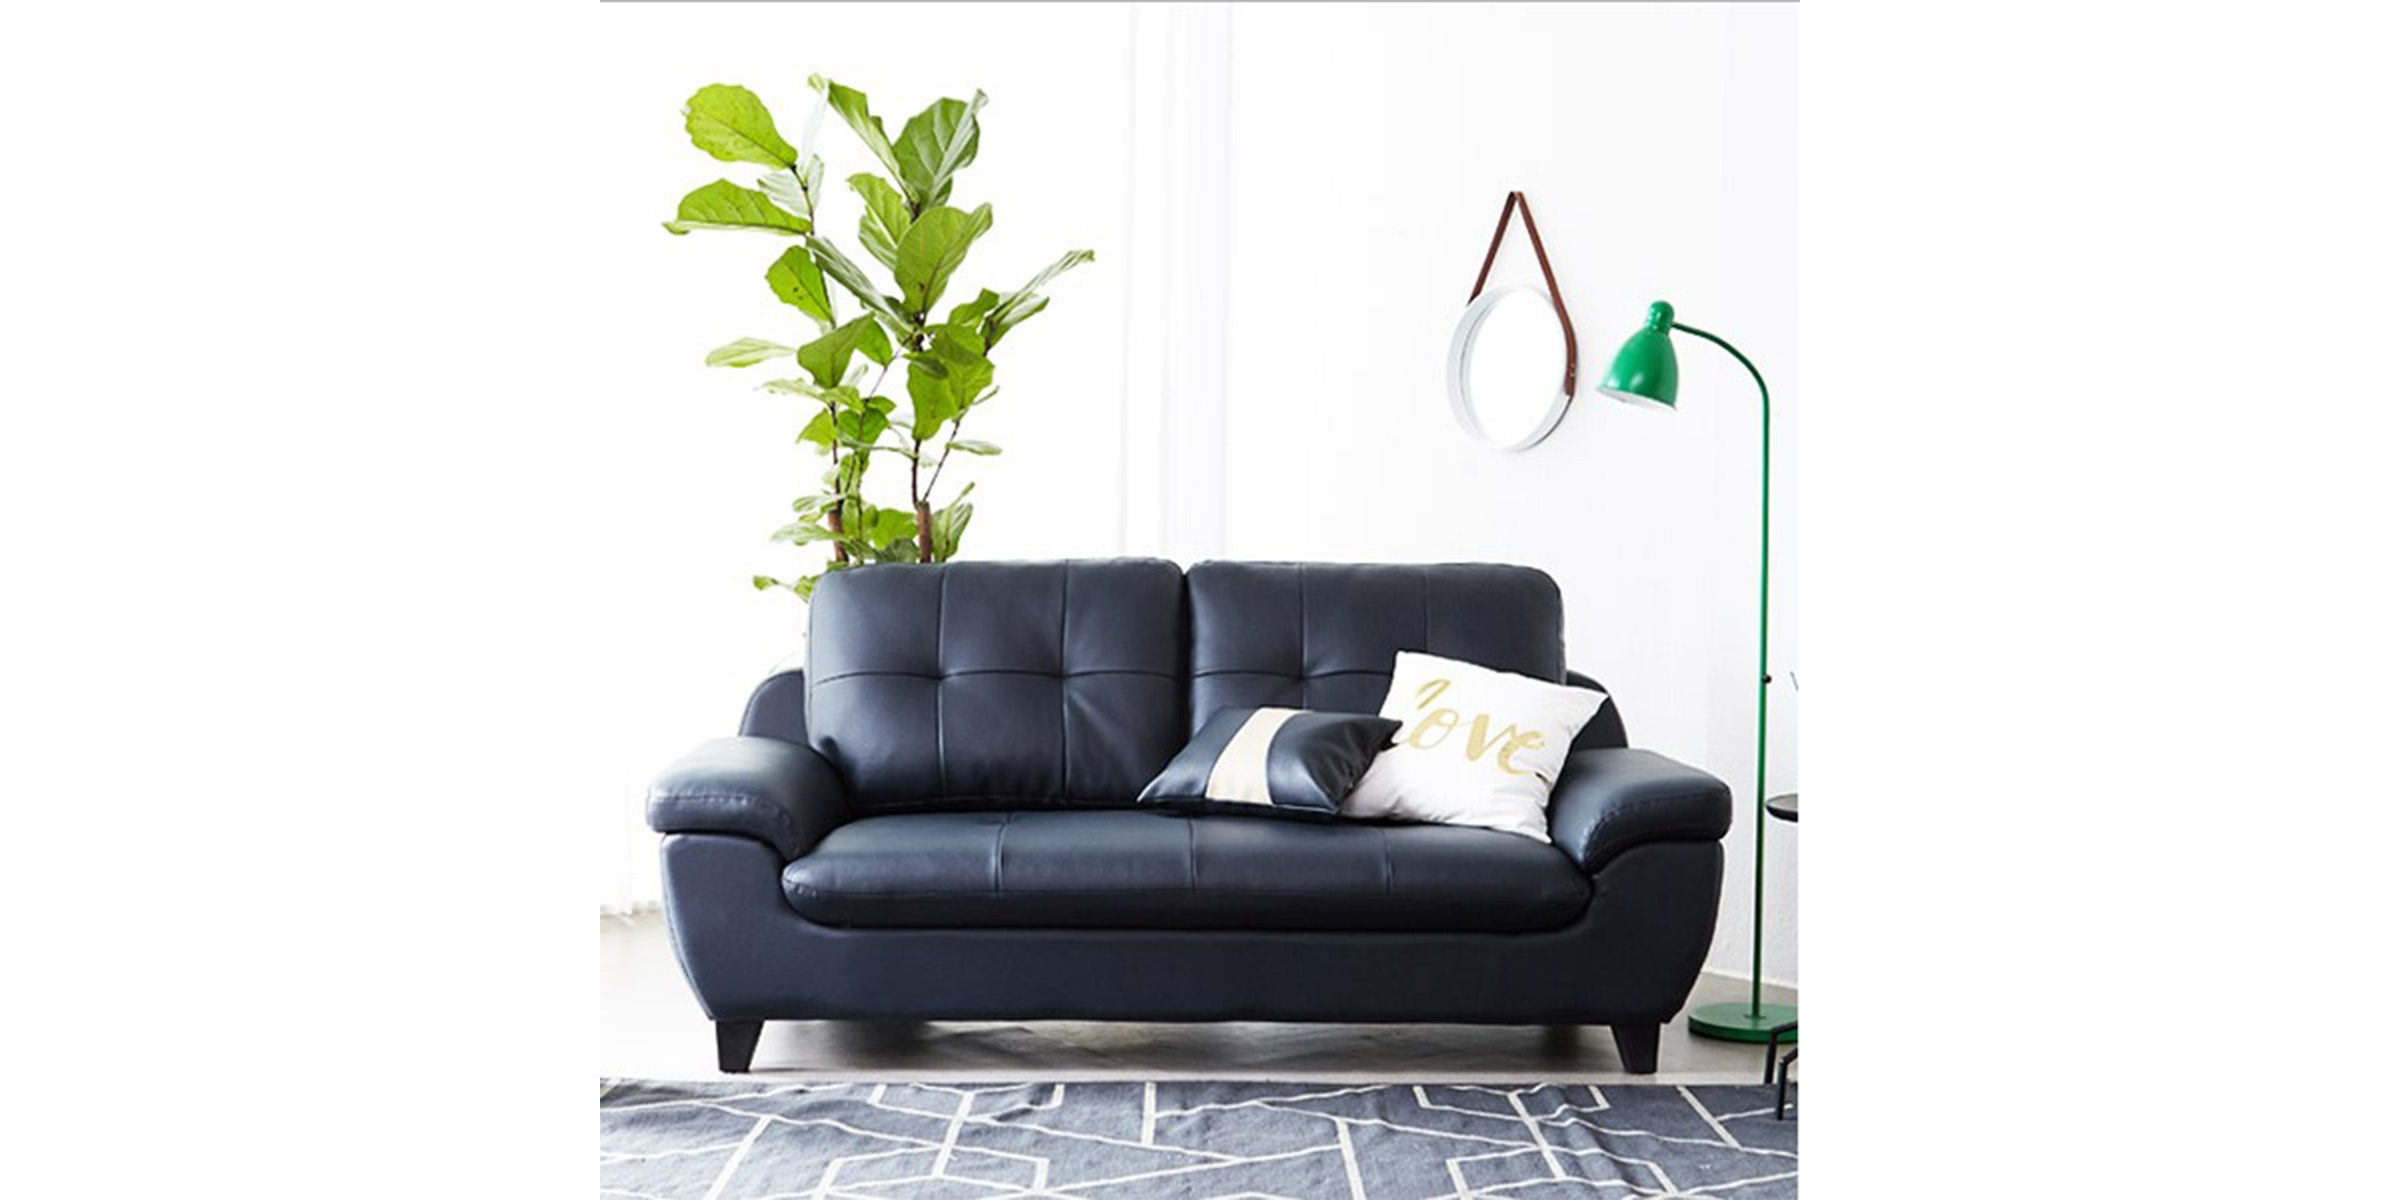 Olive House Sofa Mook 3 Seater 8008 - Navy